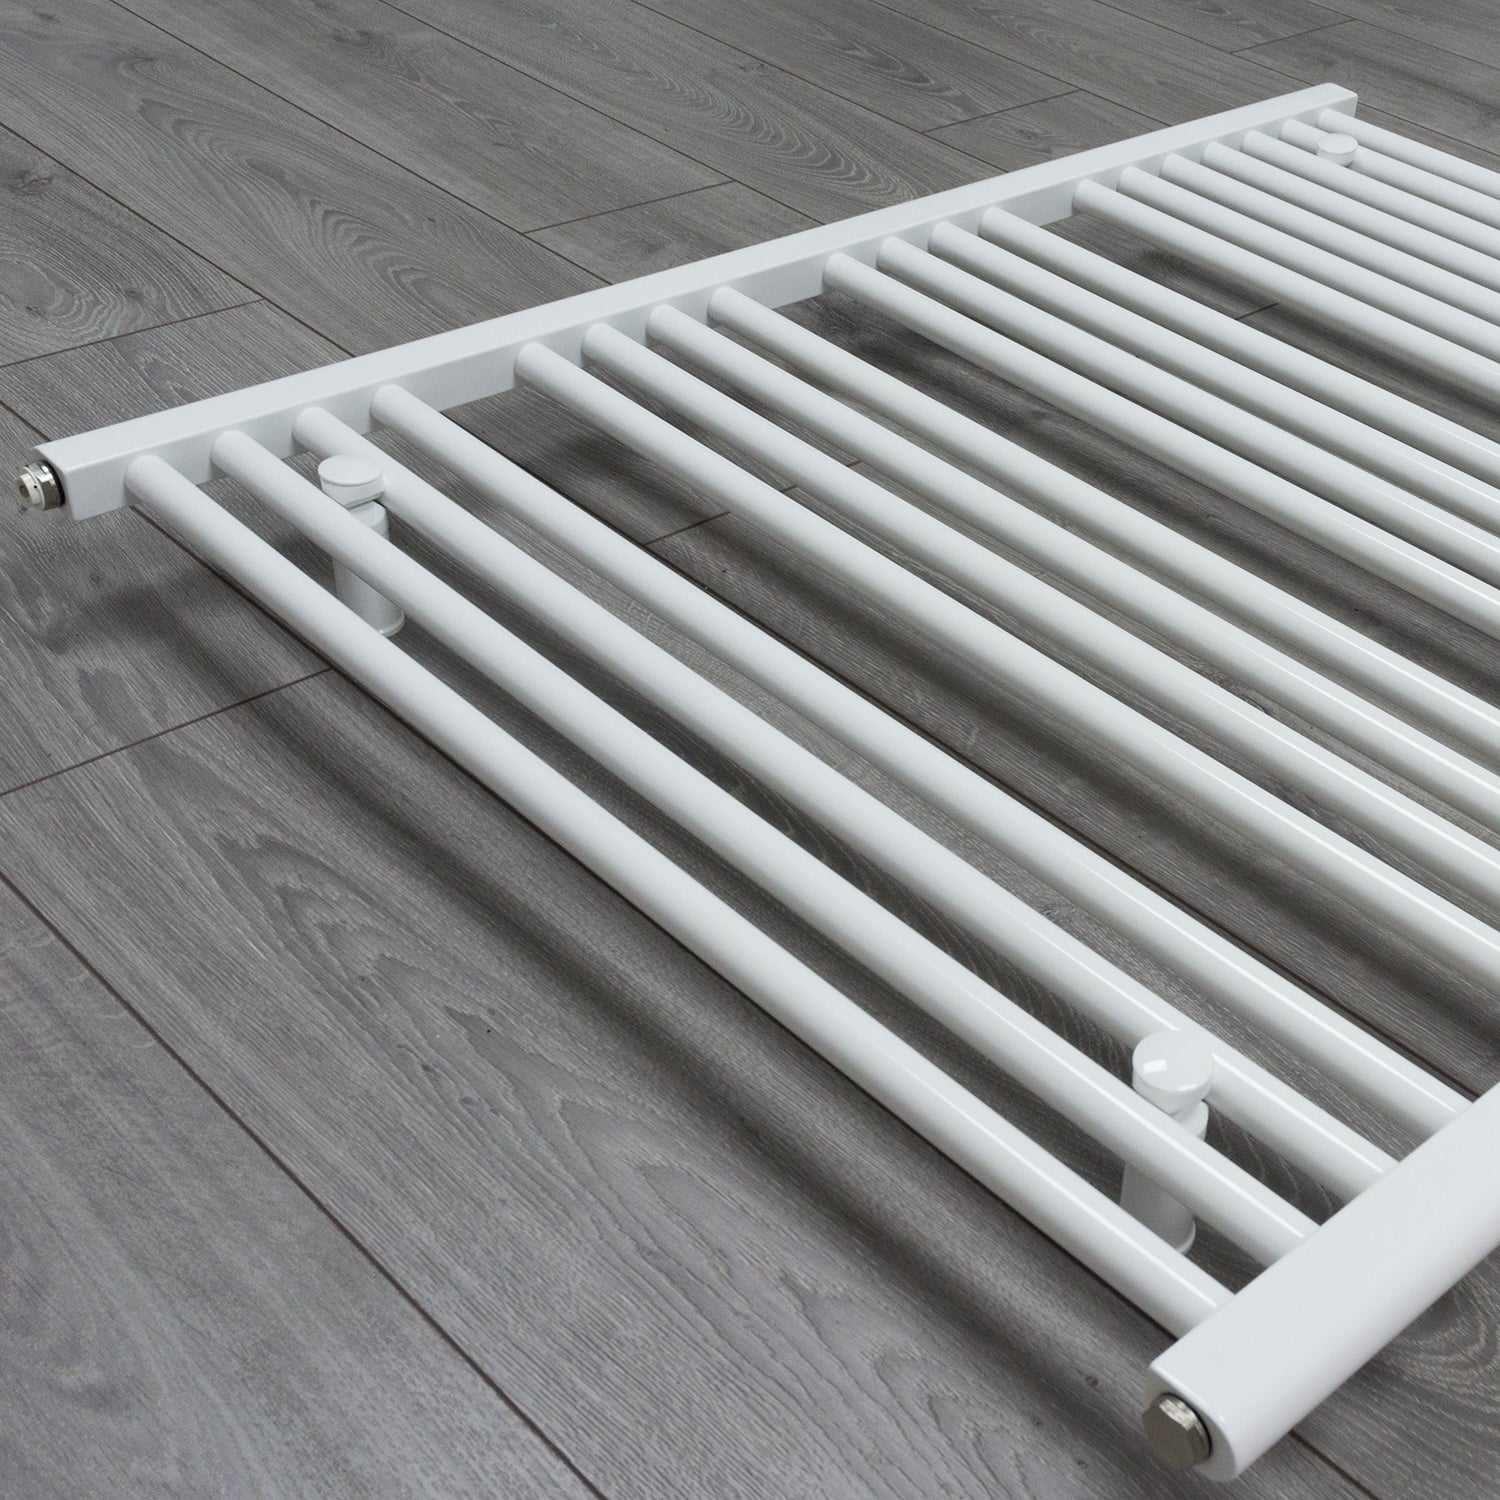 1300mm x 400mm White Heated Towel Rail Radiator Close Up Image